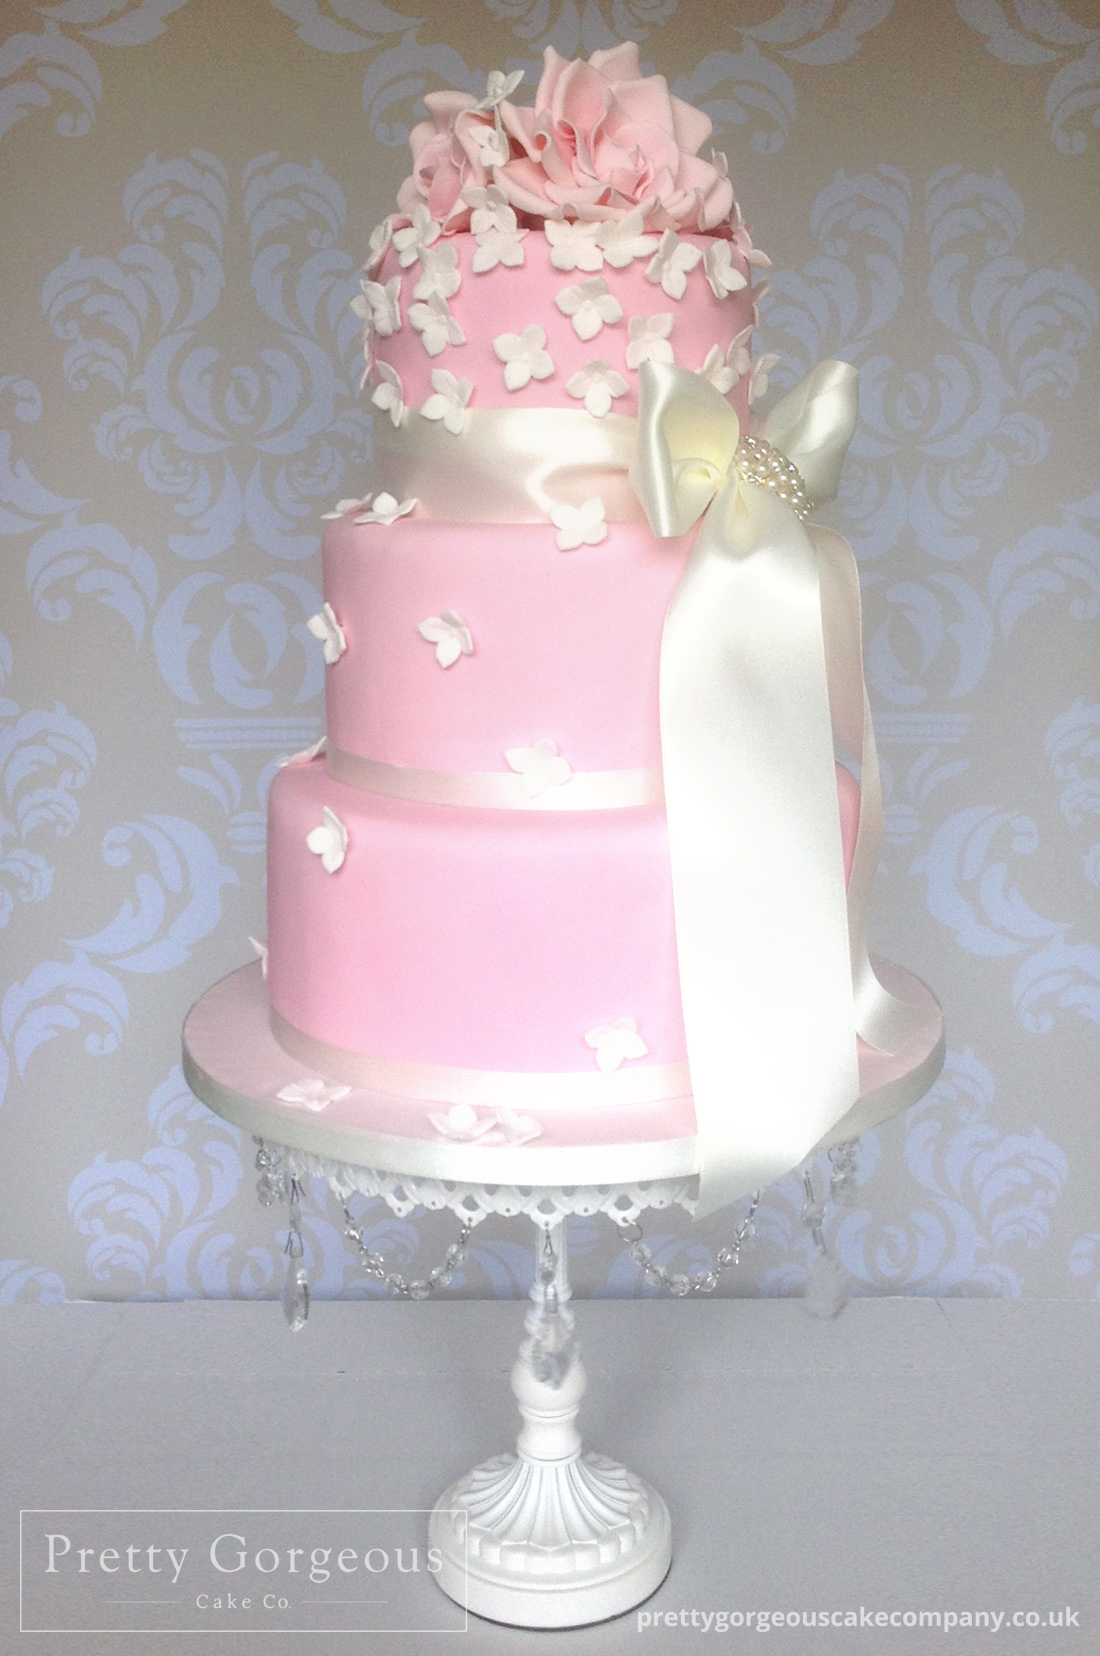 Soft Pink with White Roses & Hydrangeas – Pretty Gorgeous Cake Company